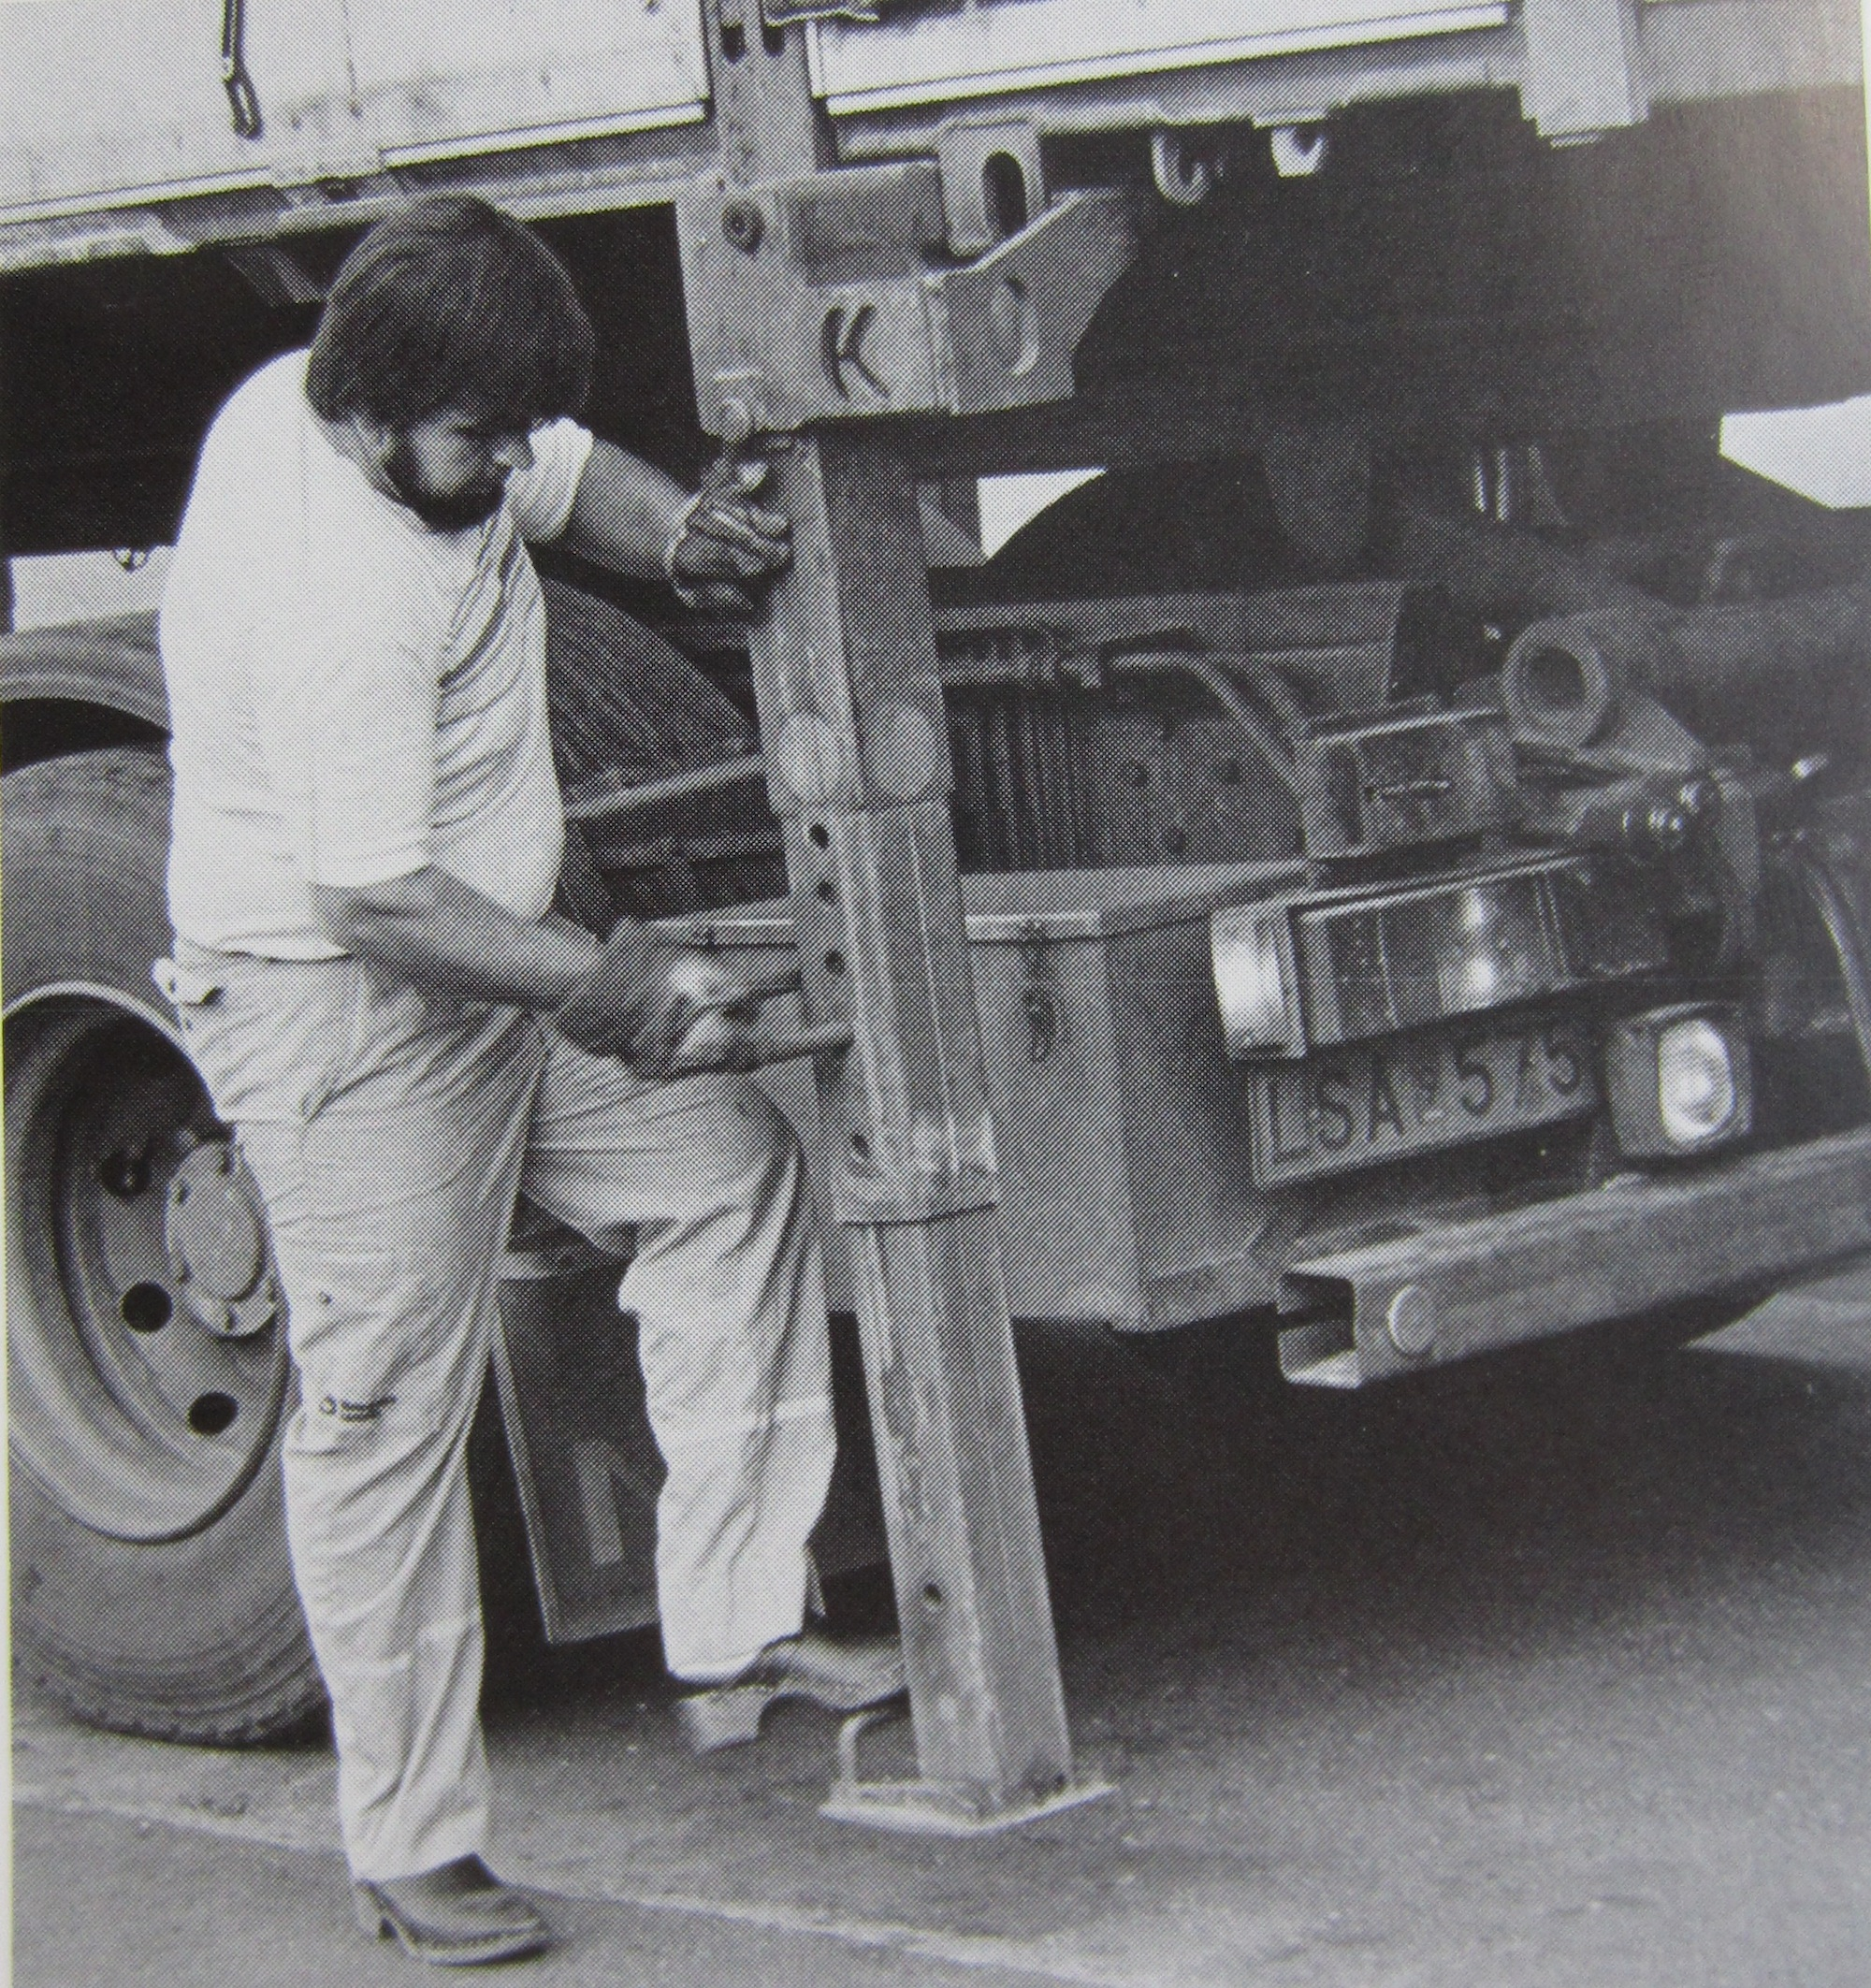 "Christer Sandin, Truck Driver, goes through the daily motions while a researcher follows and documents. Note the footwear. Taken in 1986. Published in ""Åkarens Vardag""."